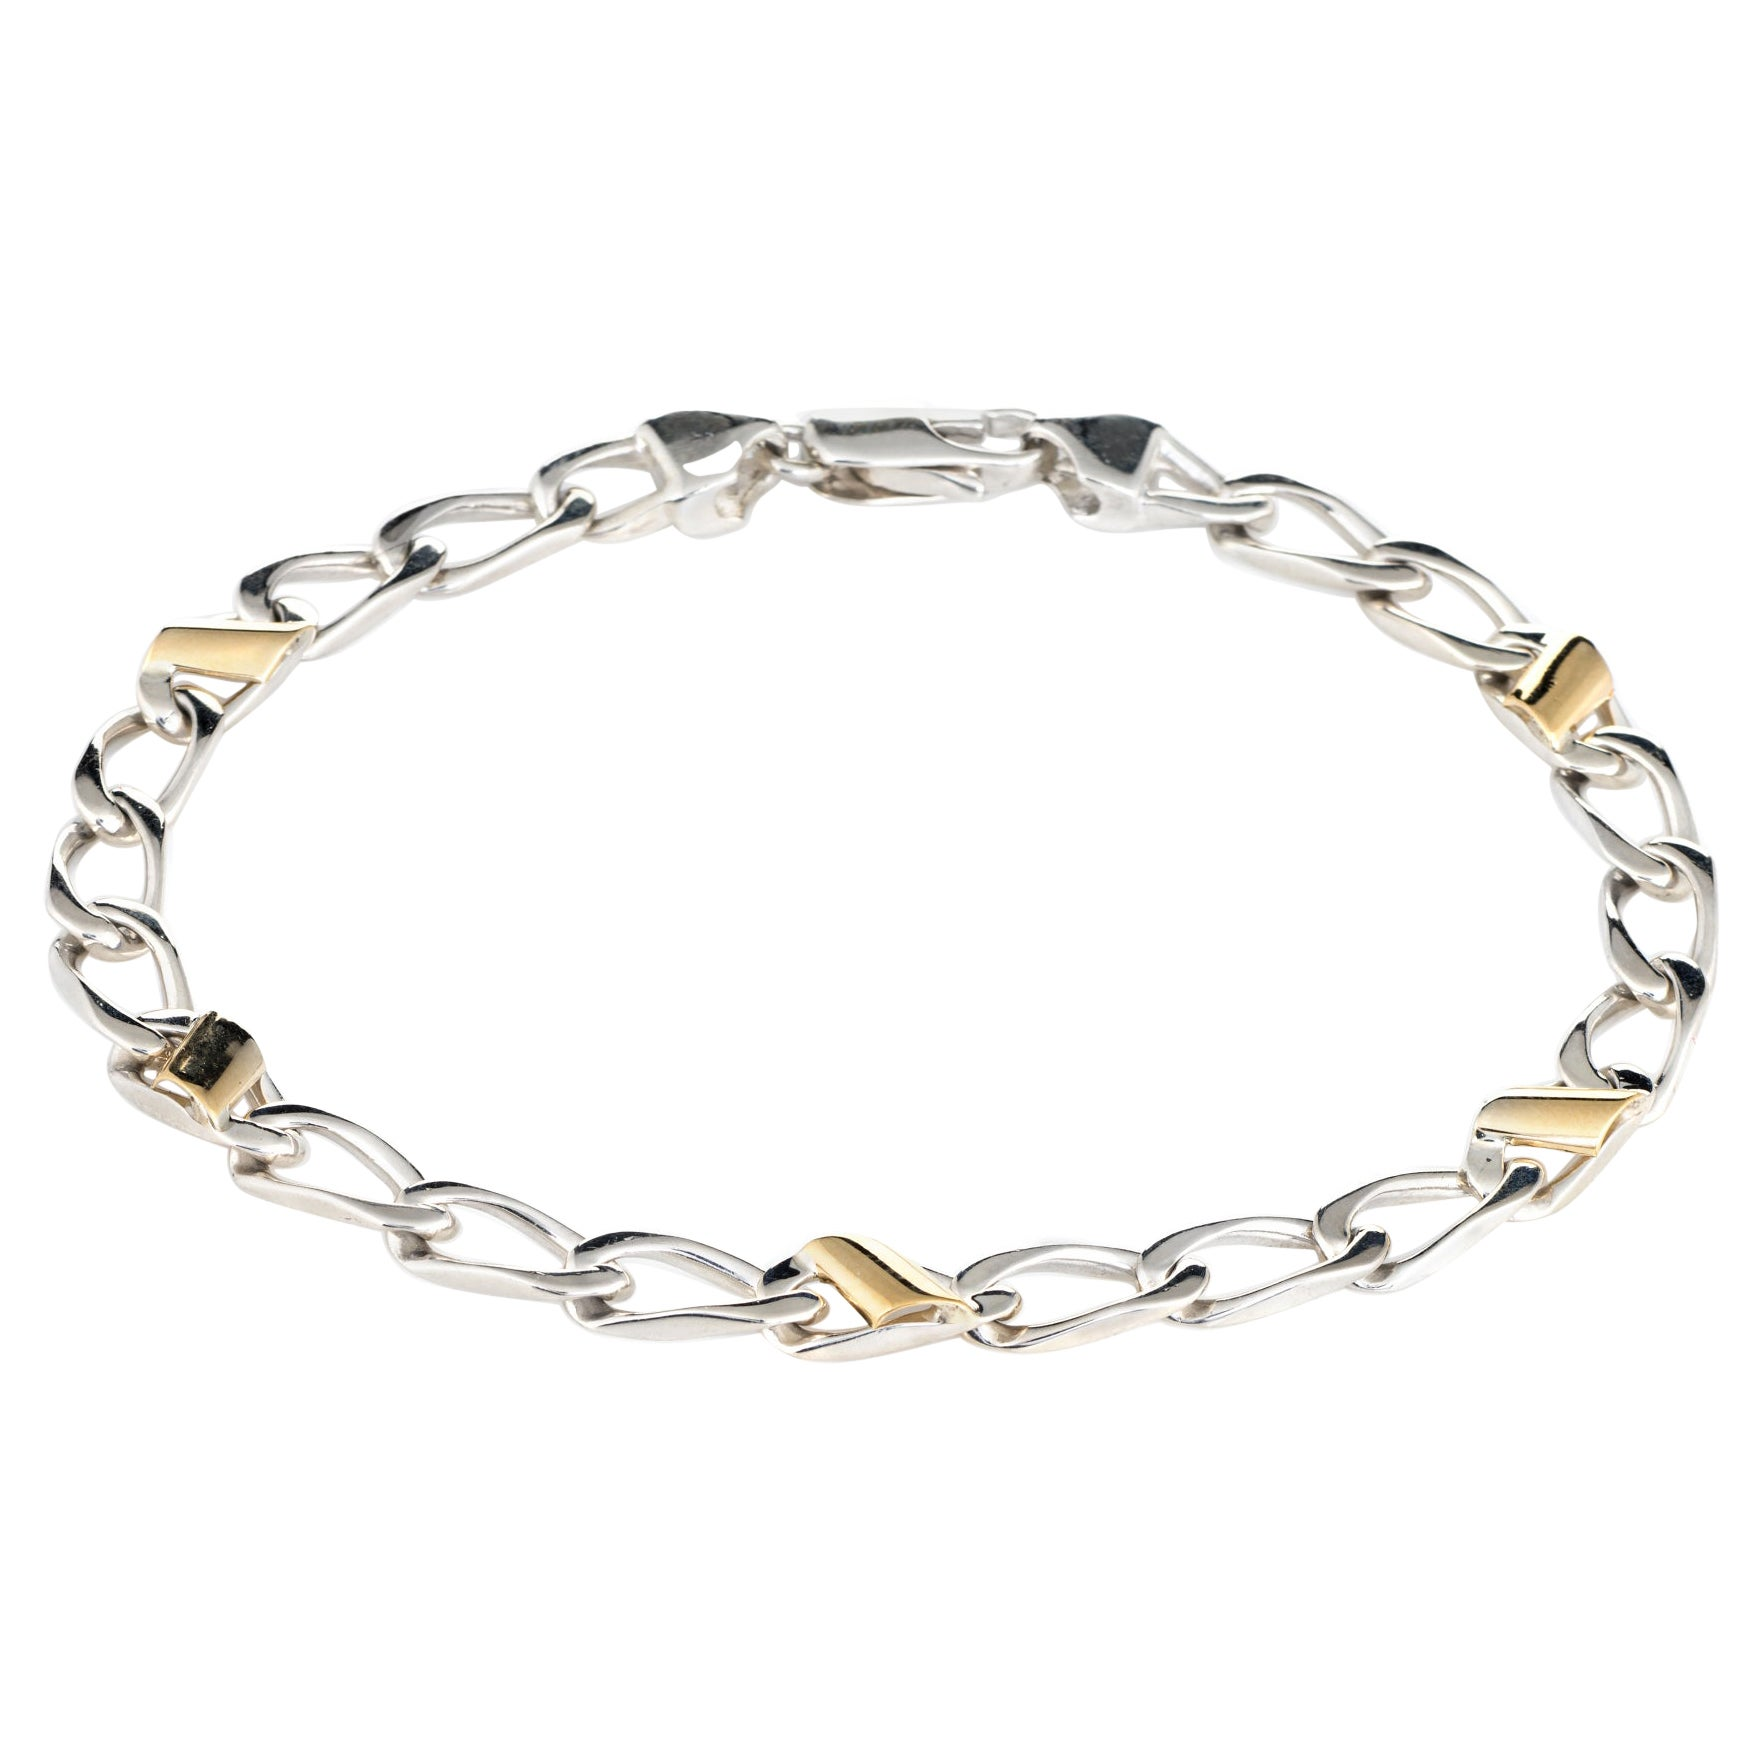 Tiffany & Co Bracelet Vintage Sterling Silver 18k Yellow Gold Curb